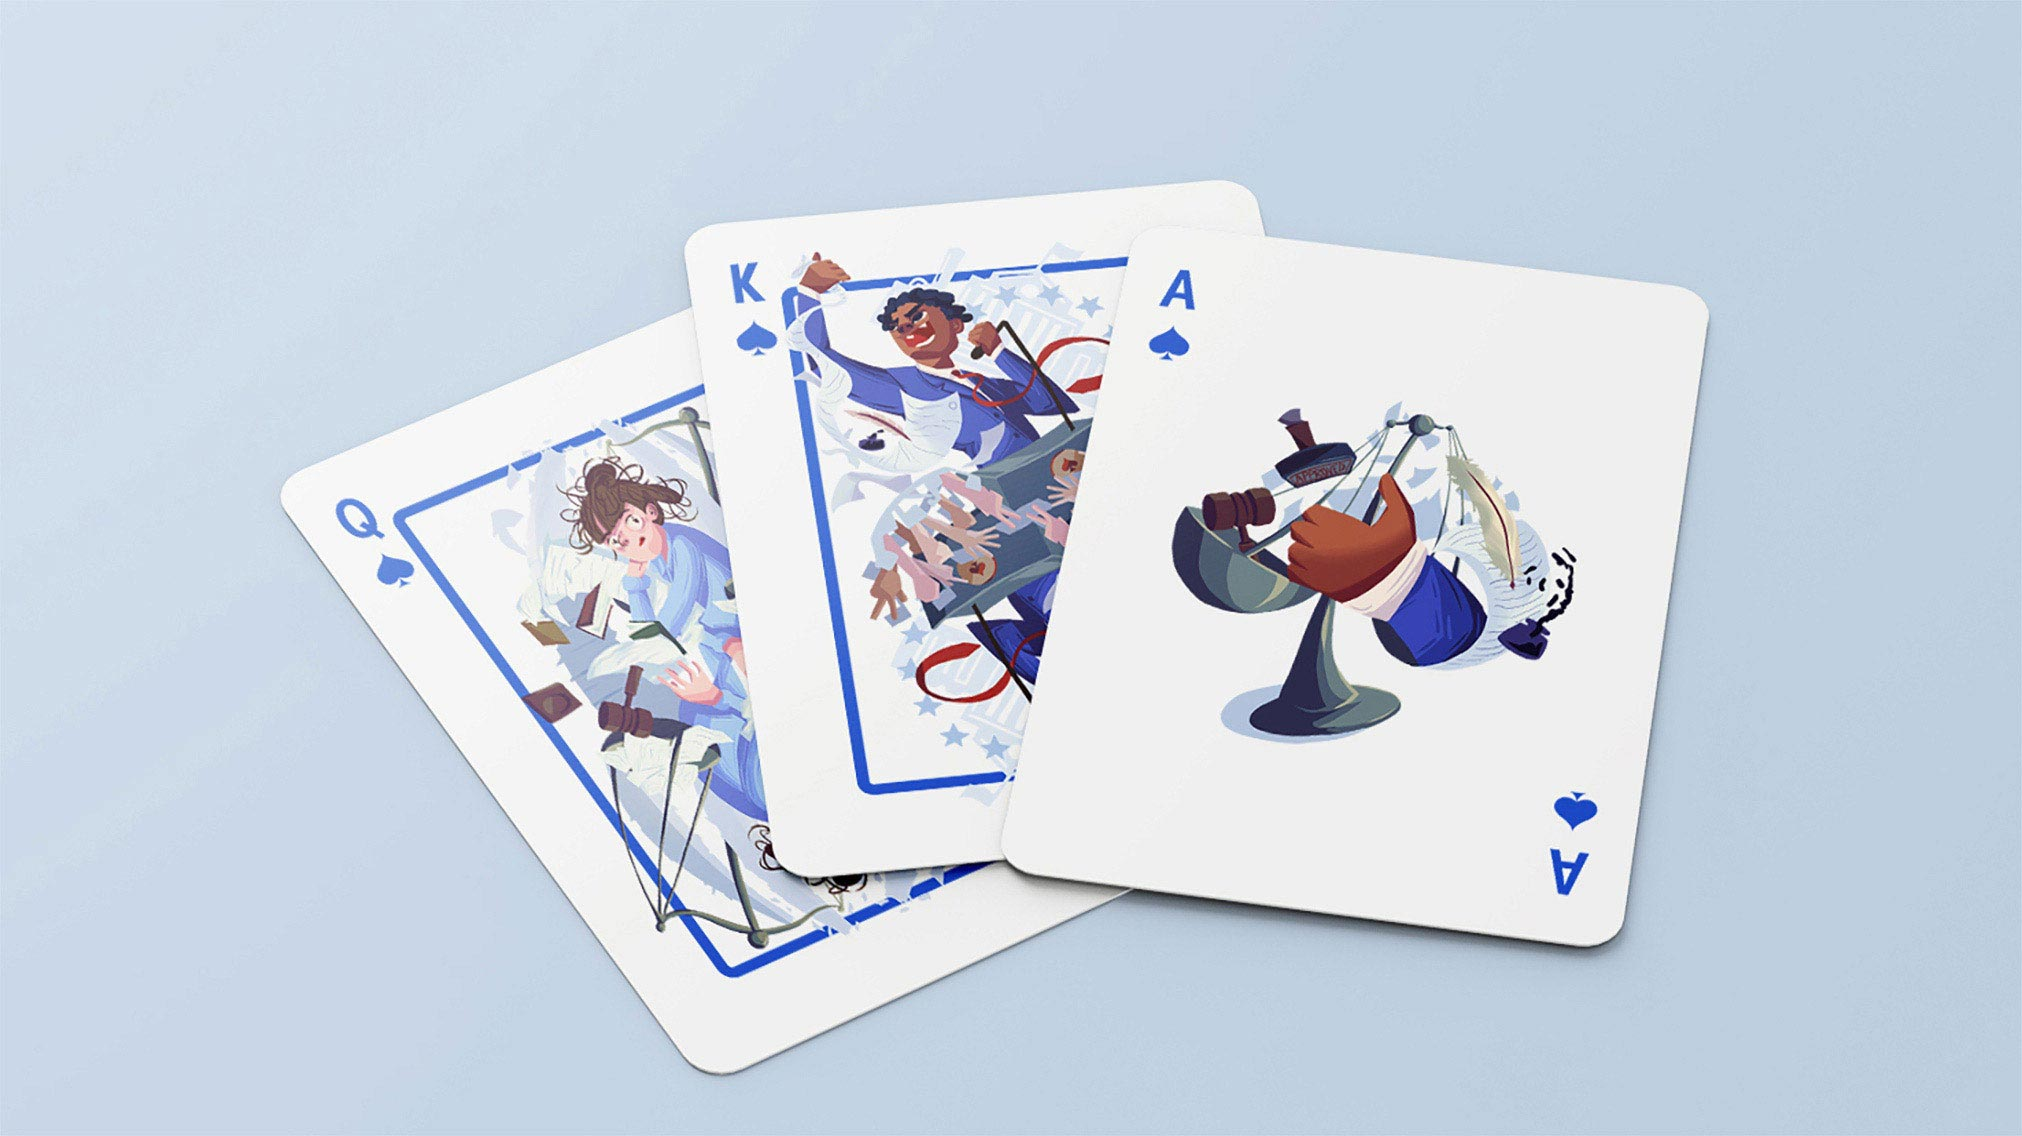 Illustrative playing cards design based on the four main study disciplines: Humanities, Science, Law, Politics.